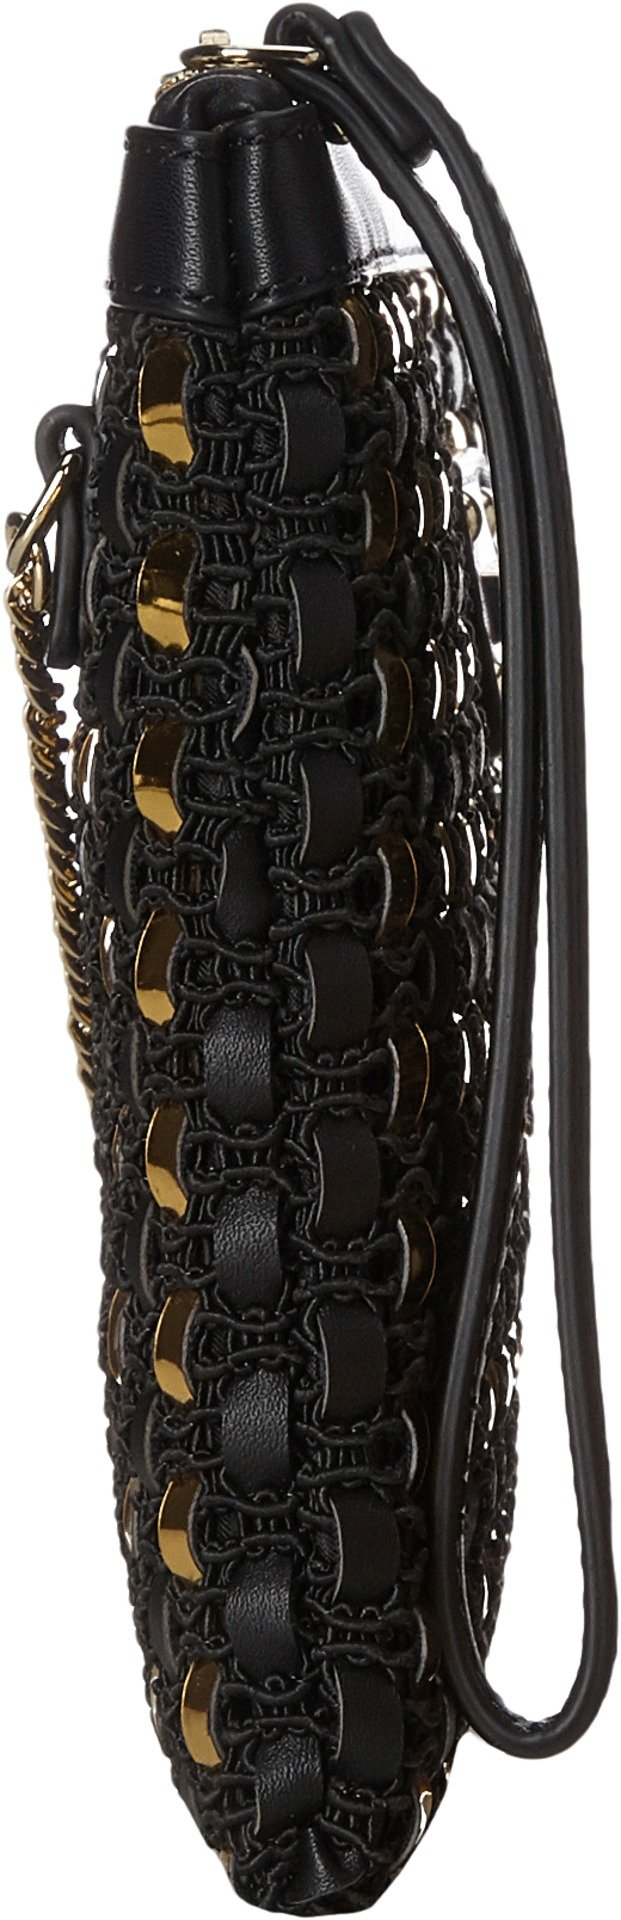 LOVE Moschino Women's Crossbody Chain Strap Fantasy Black One Size by Love Moschino (Image #3)